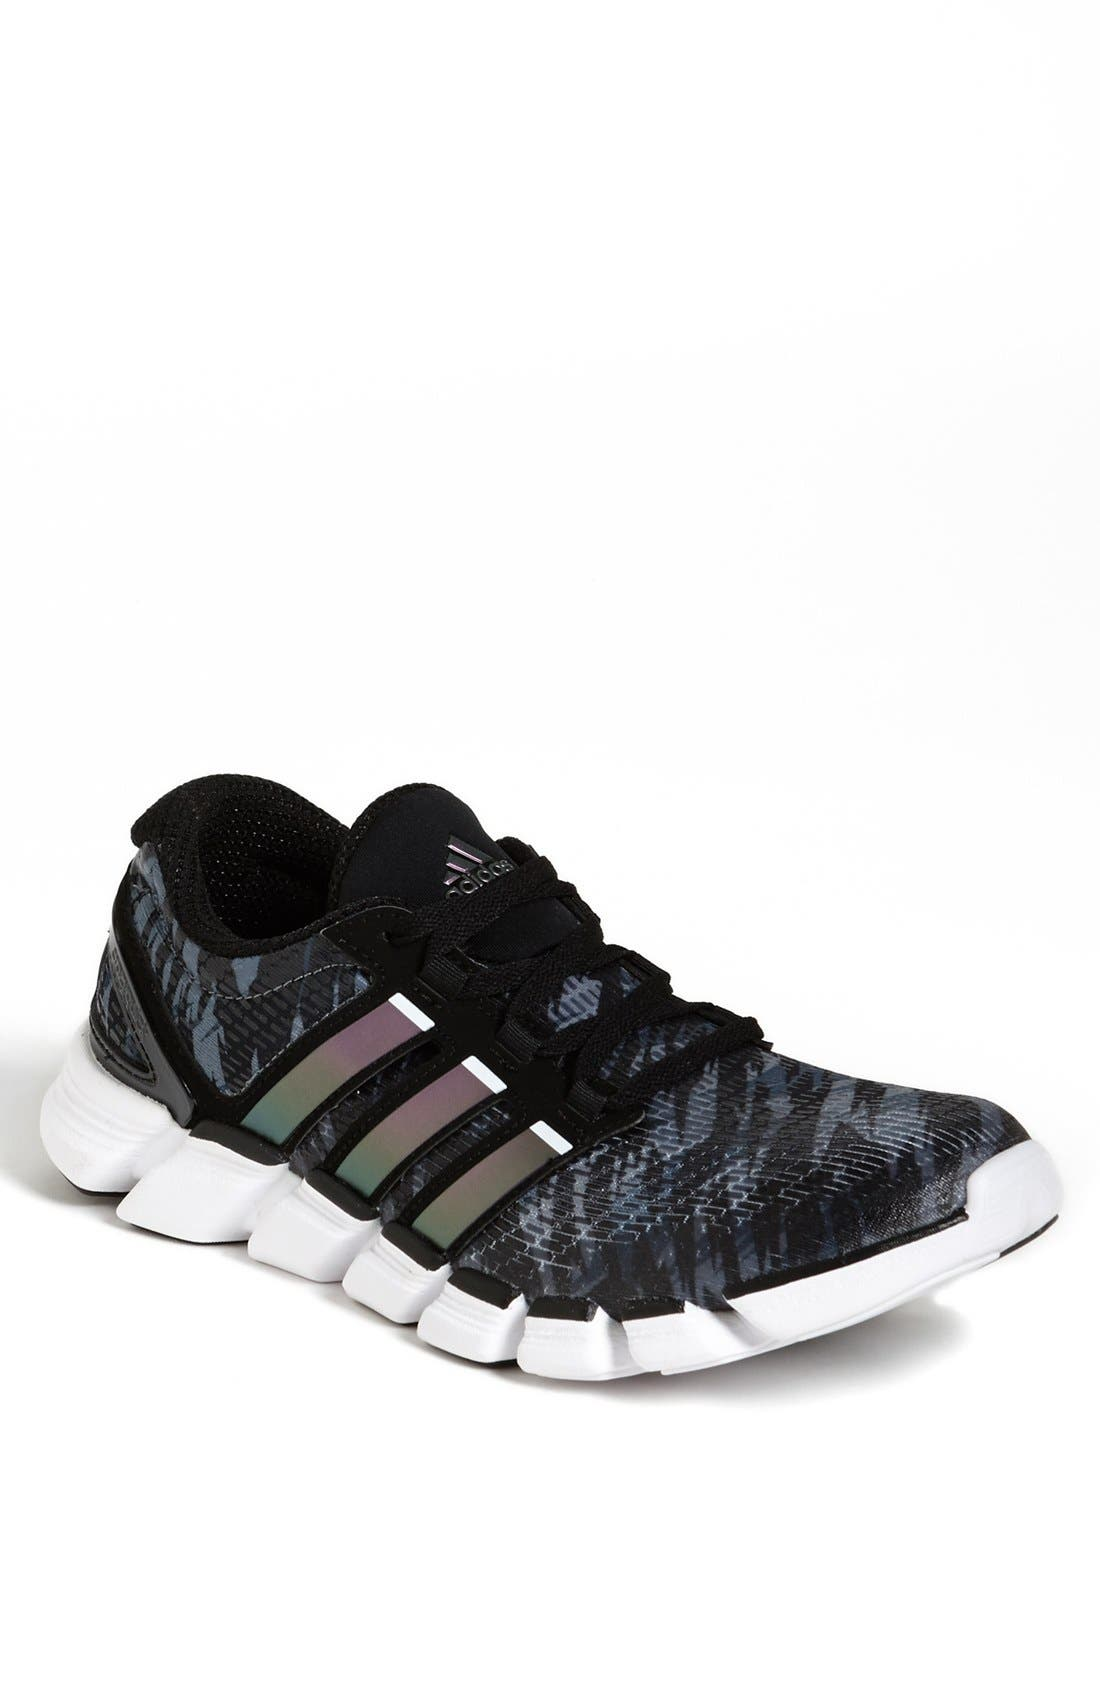 Main Image - adidas 'adiPure CrazyQuick' Running Shoe (Men)